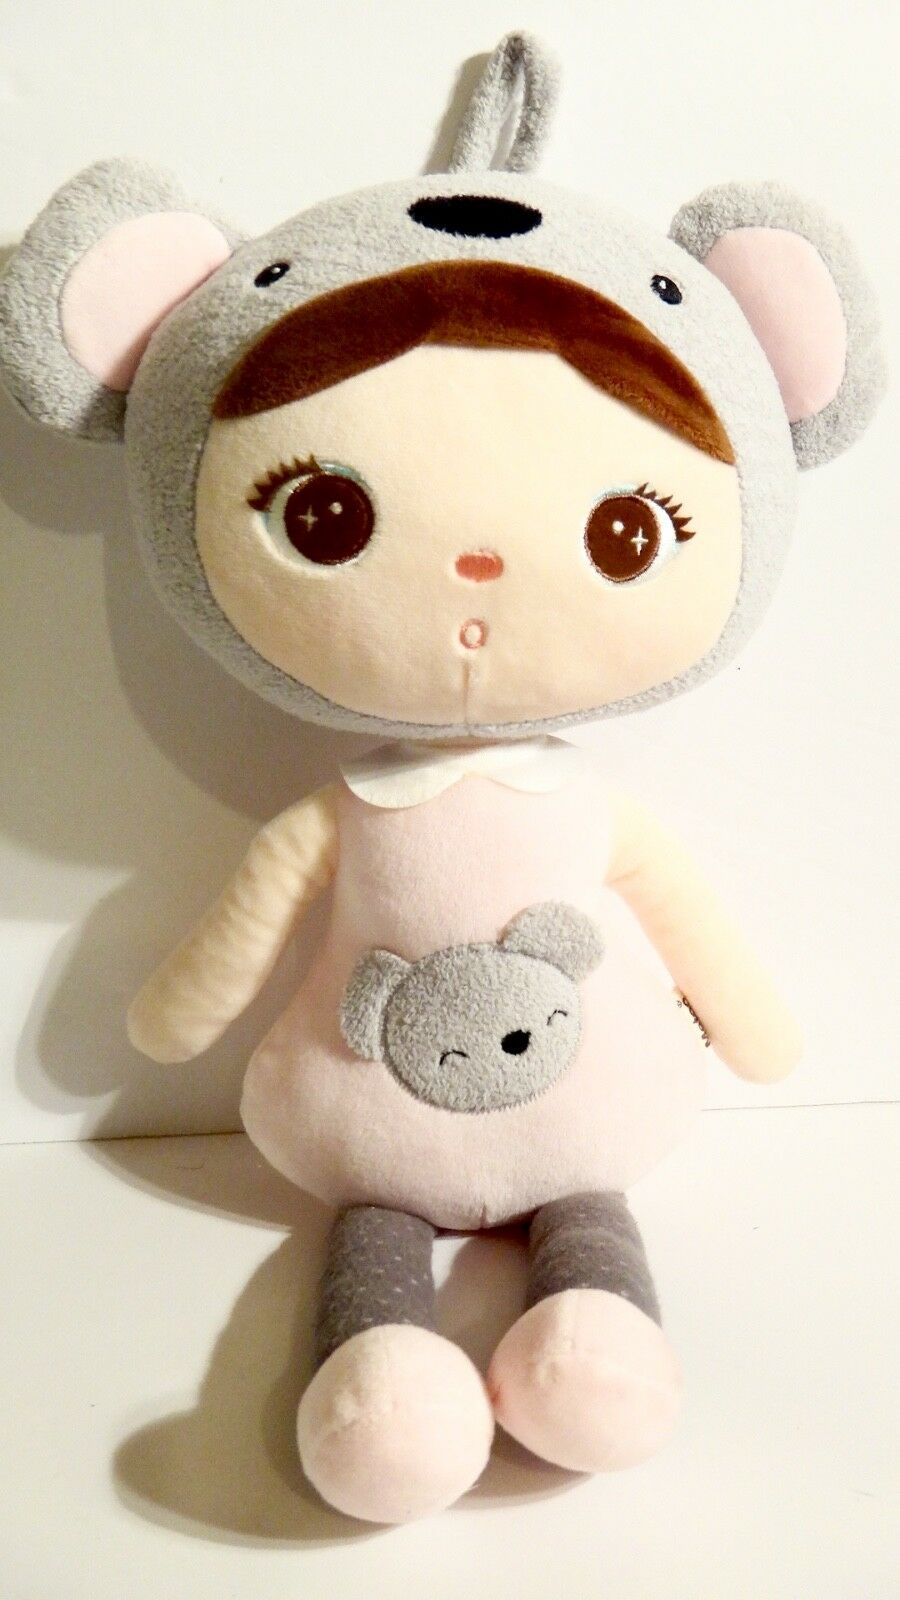 "Me Too JIBAO Stuffed Koala Baby Girl Dolls Plush Toys 18"" - $9.89"